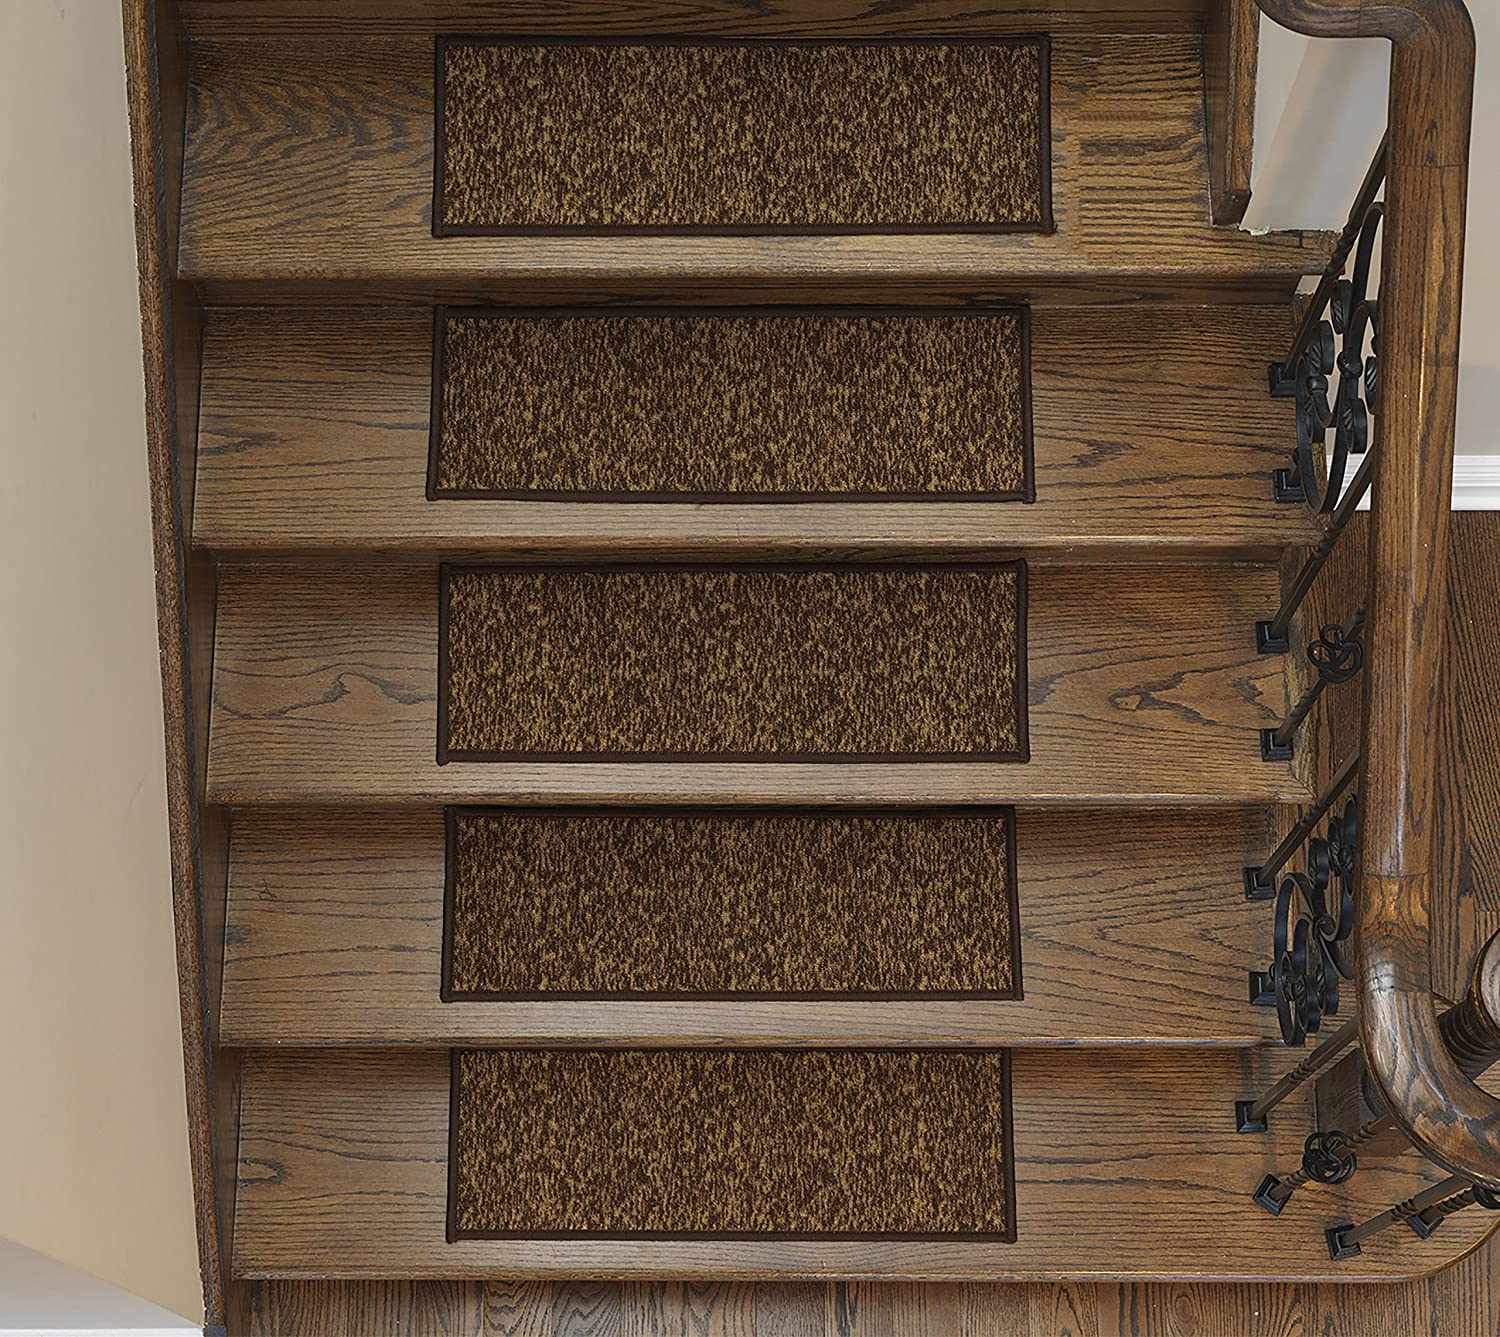 Ottomanson Homeline Escalier Collection Stair Treads, 8.5X26, 7 Pack, Brown 8.5X26 ESC8408-8X26